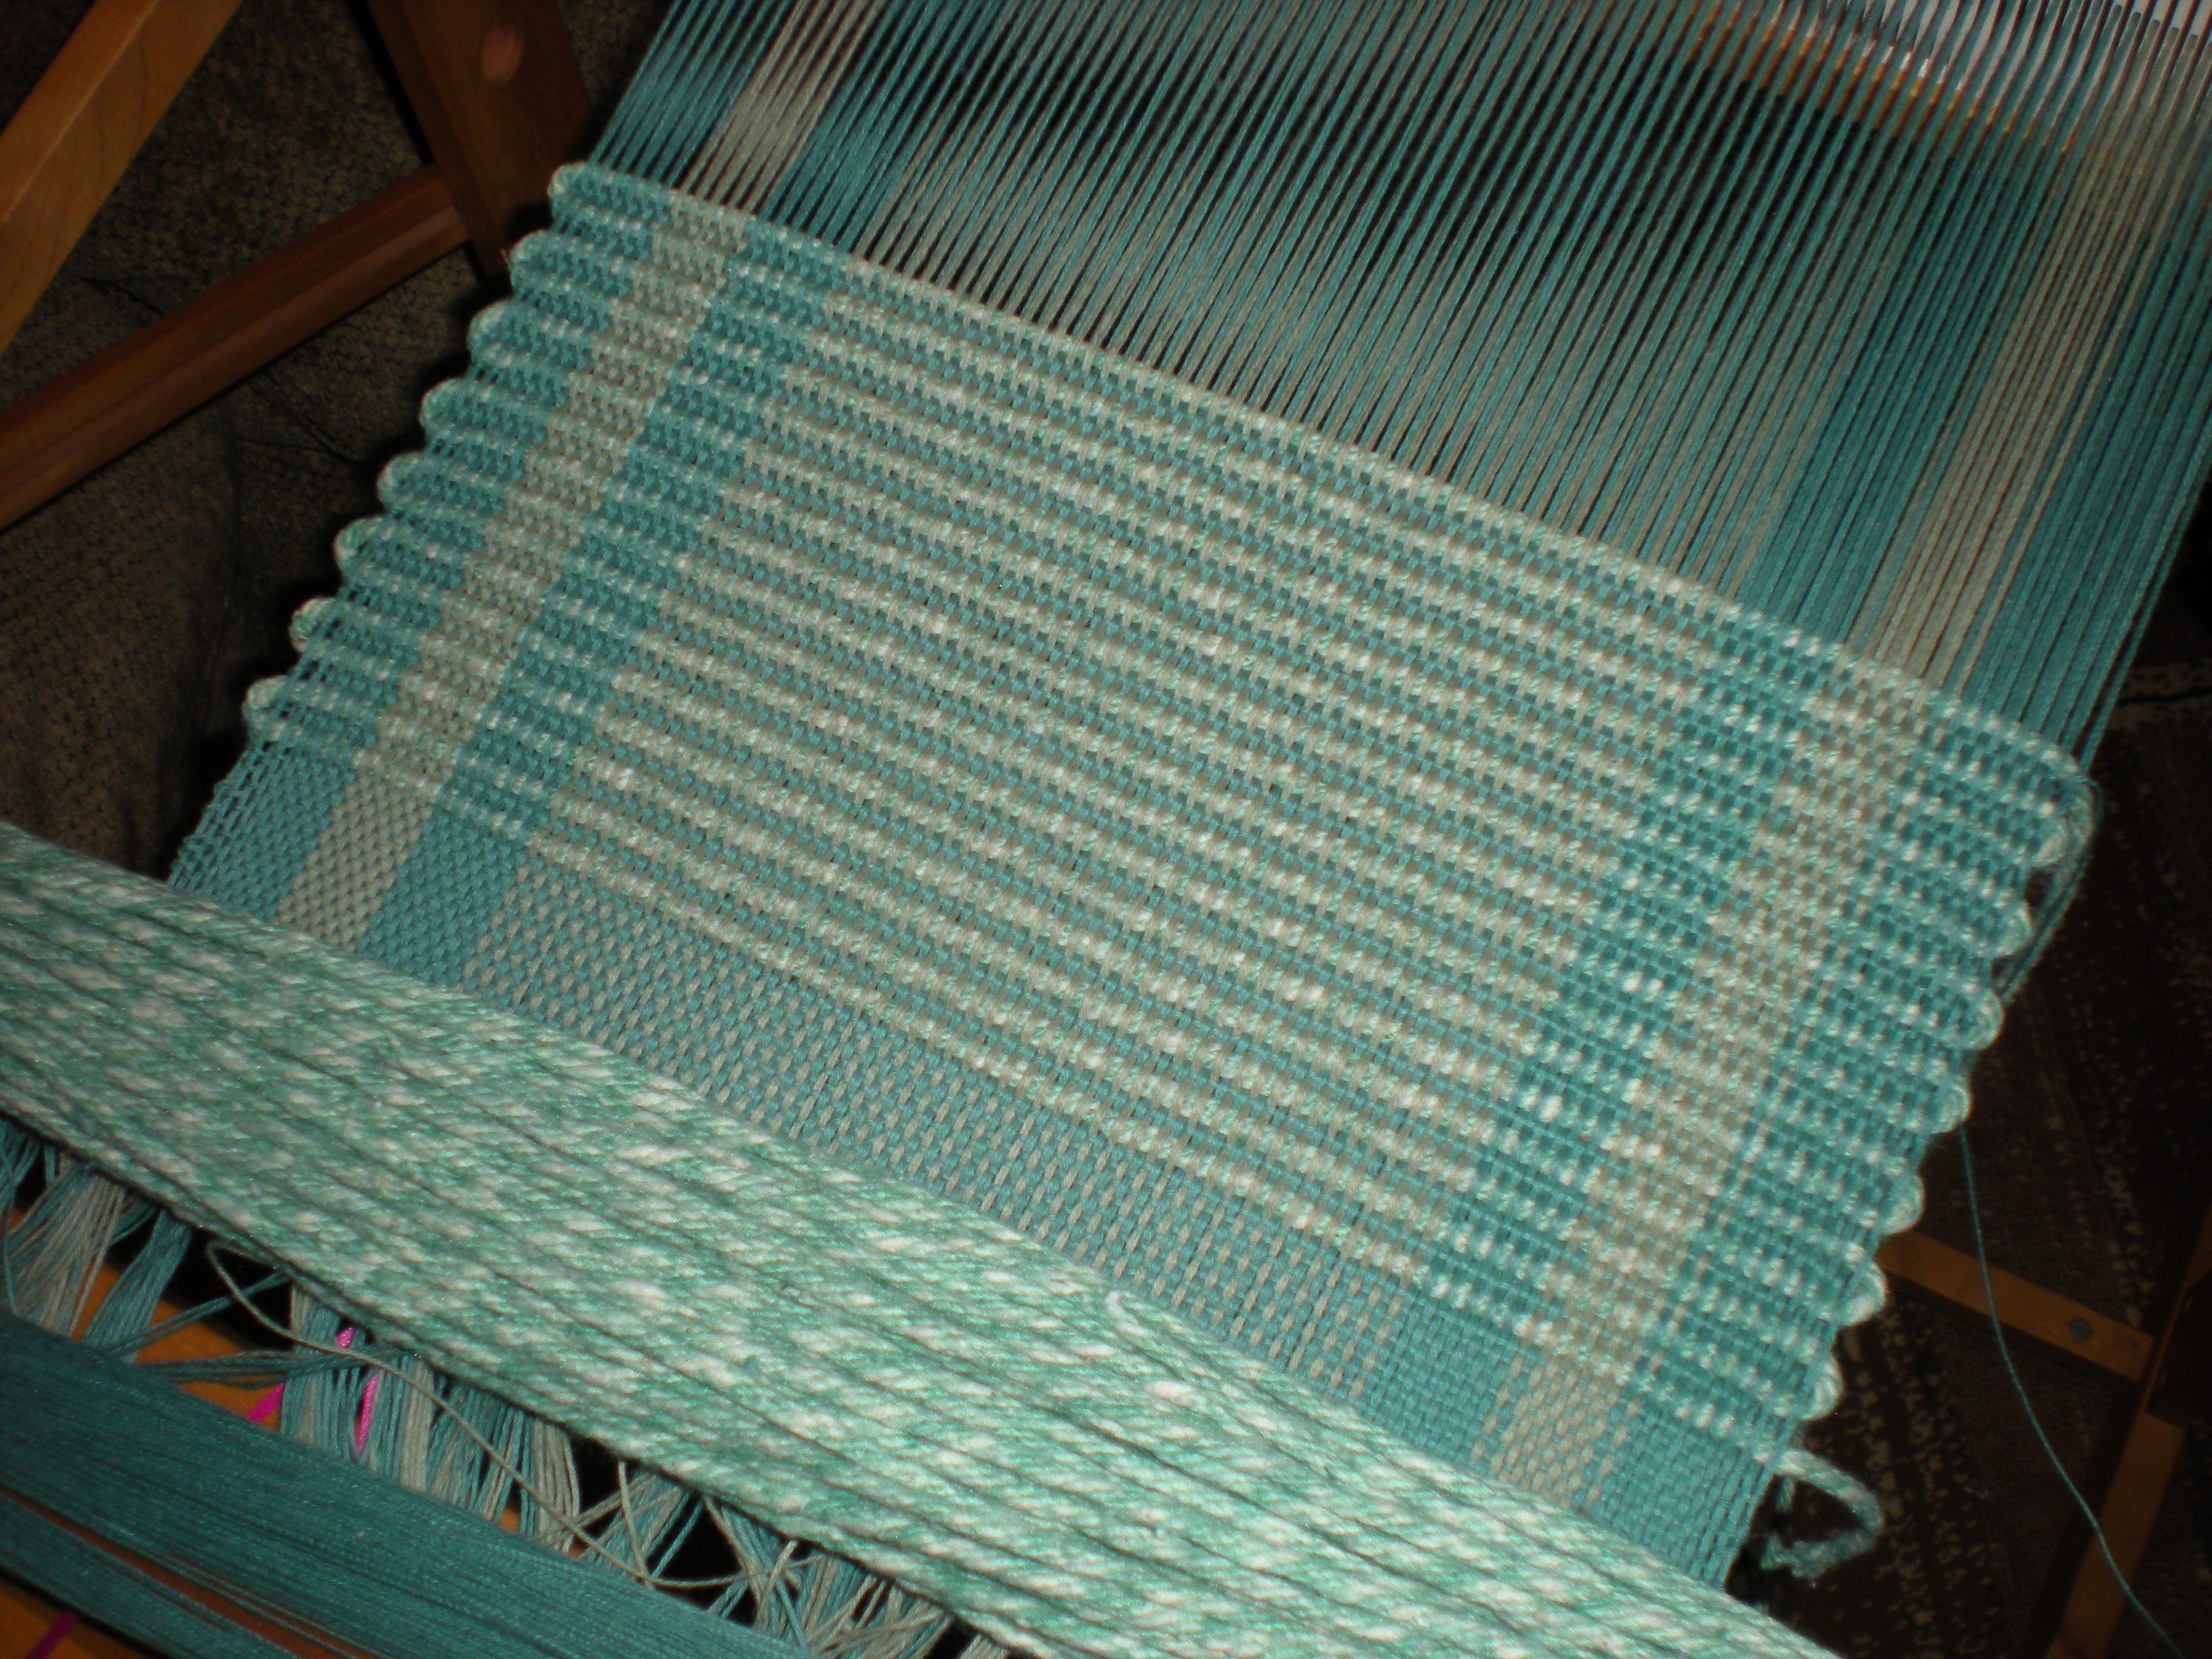 Weaving Placemats On My Rigid Heddle Loom